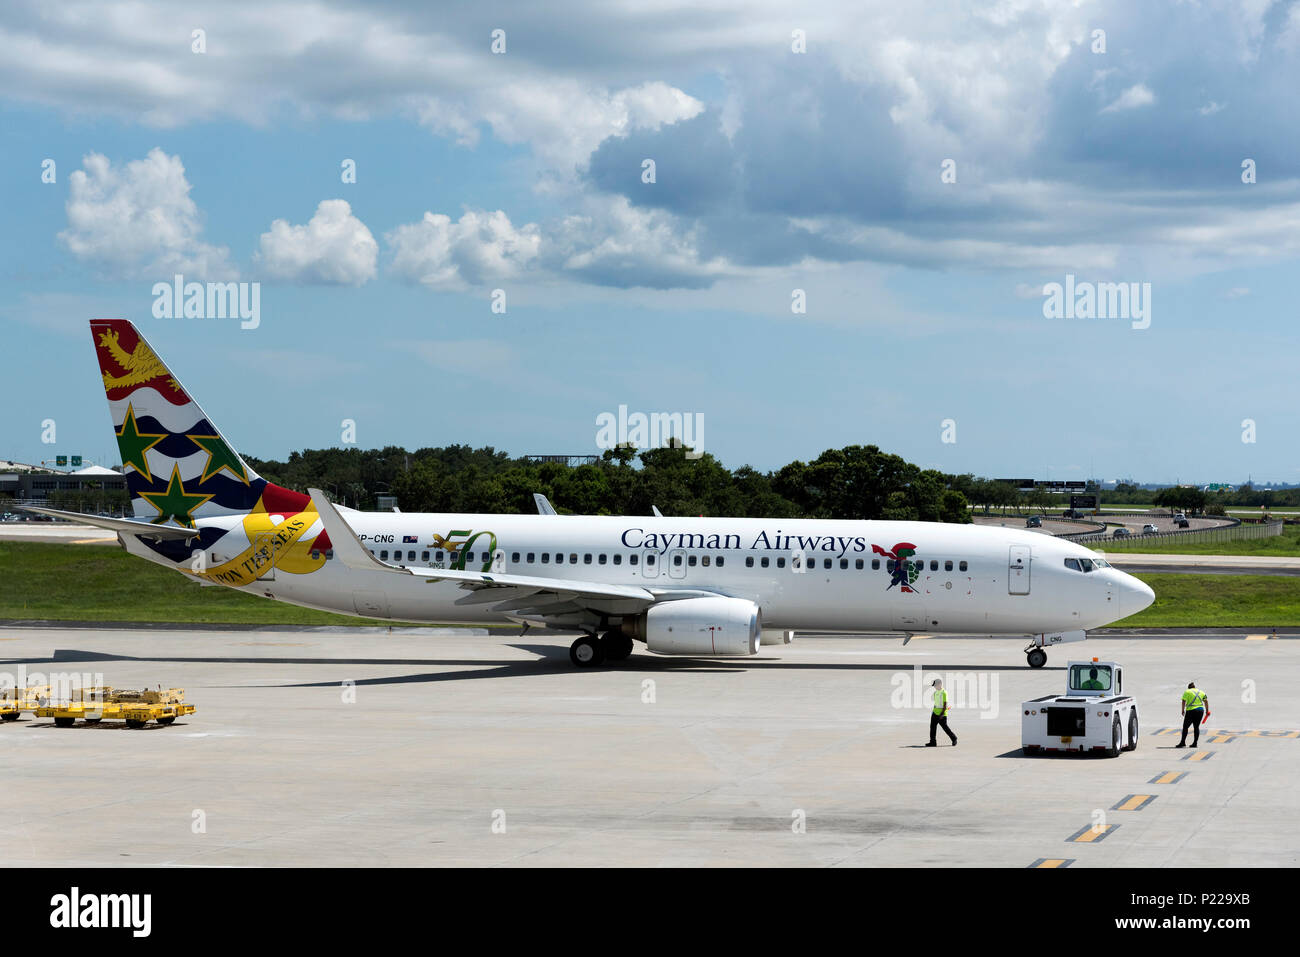 Tampa International Airport Florida USA. 2018. A Cayman Airways  passenger jet preparing to taxi from the apron. - Stock Image